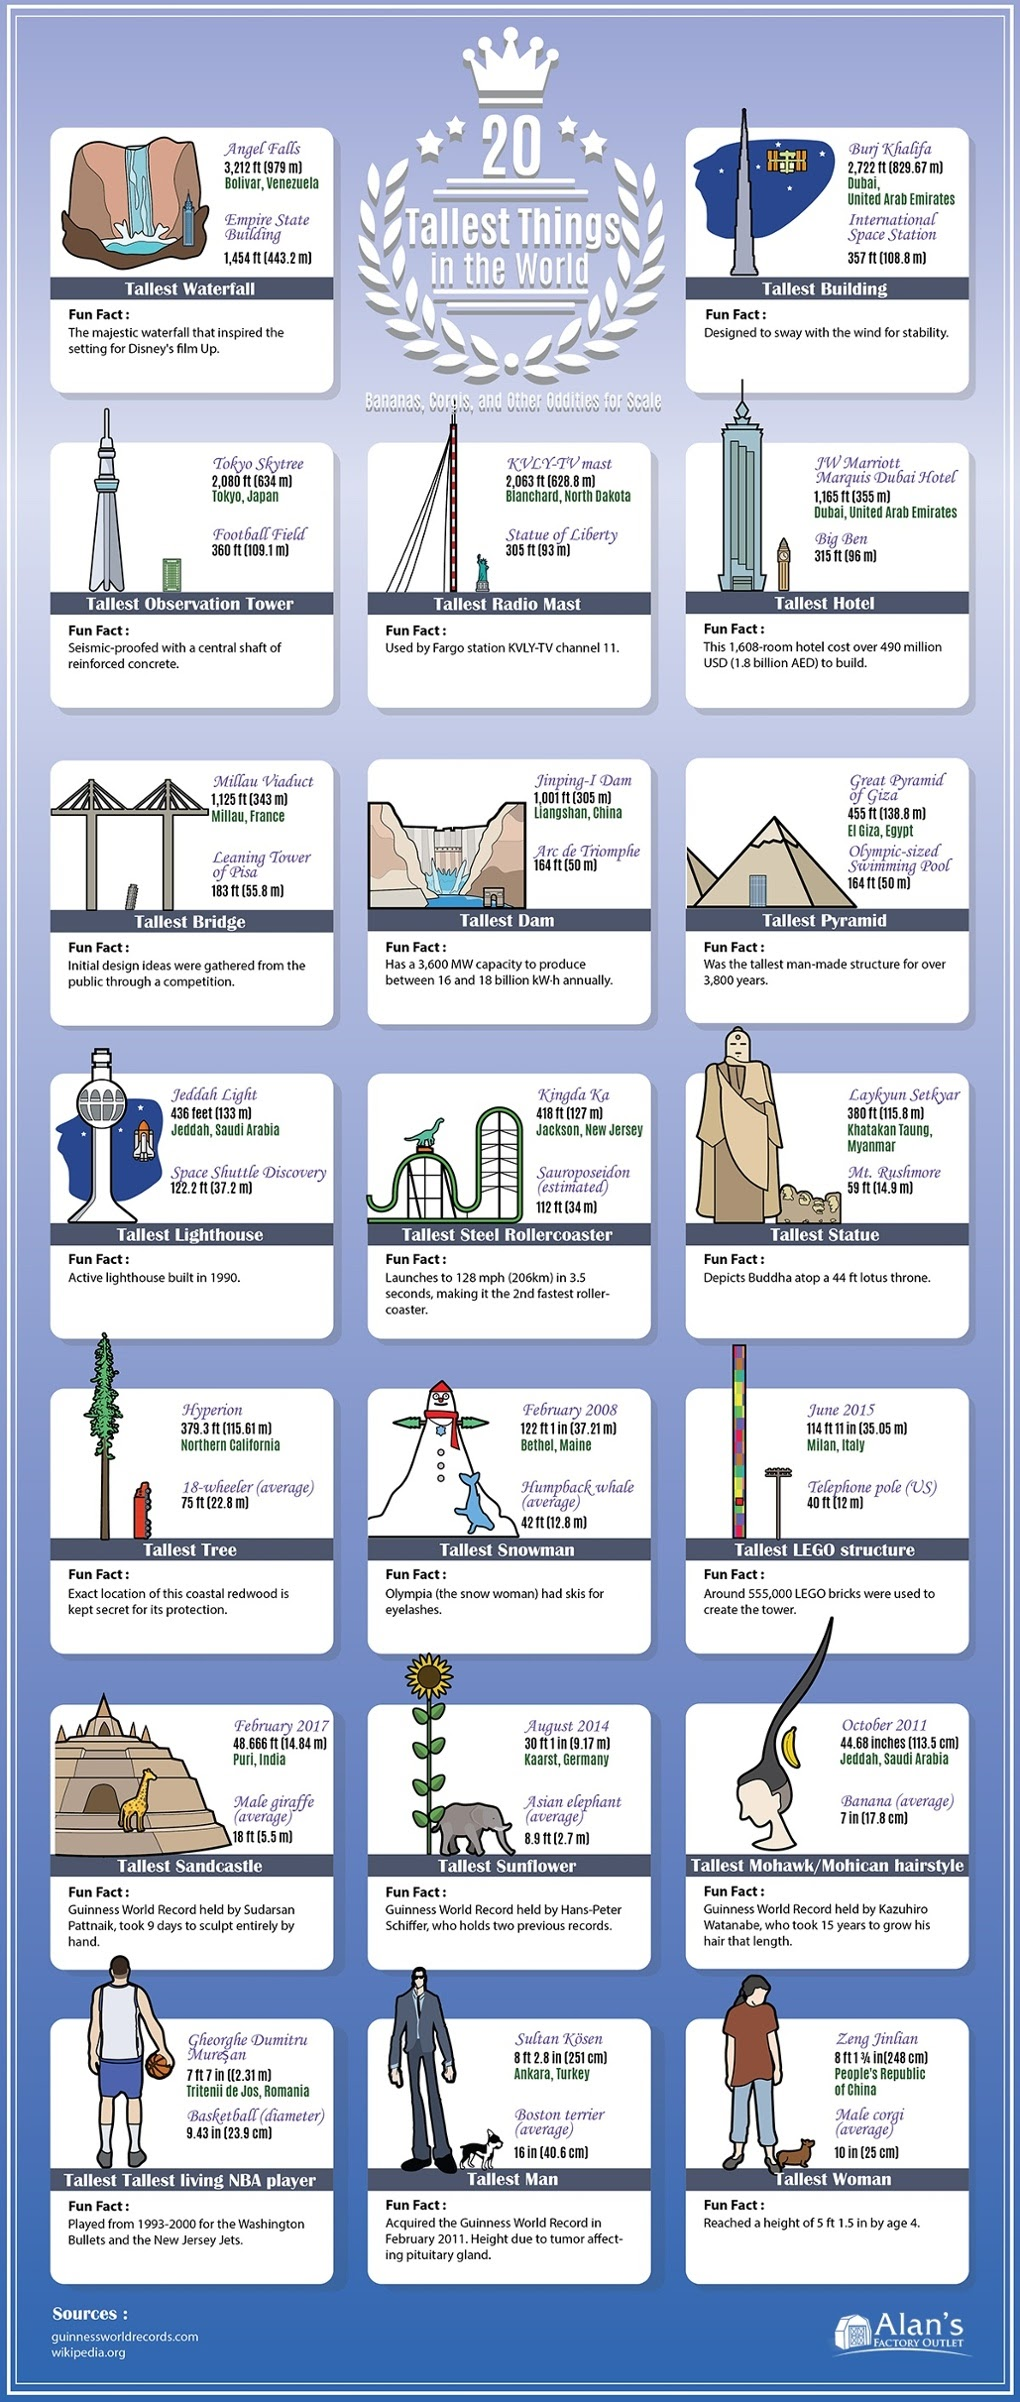 20 Tallest Things in the World